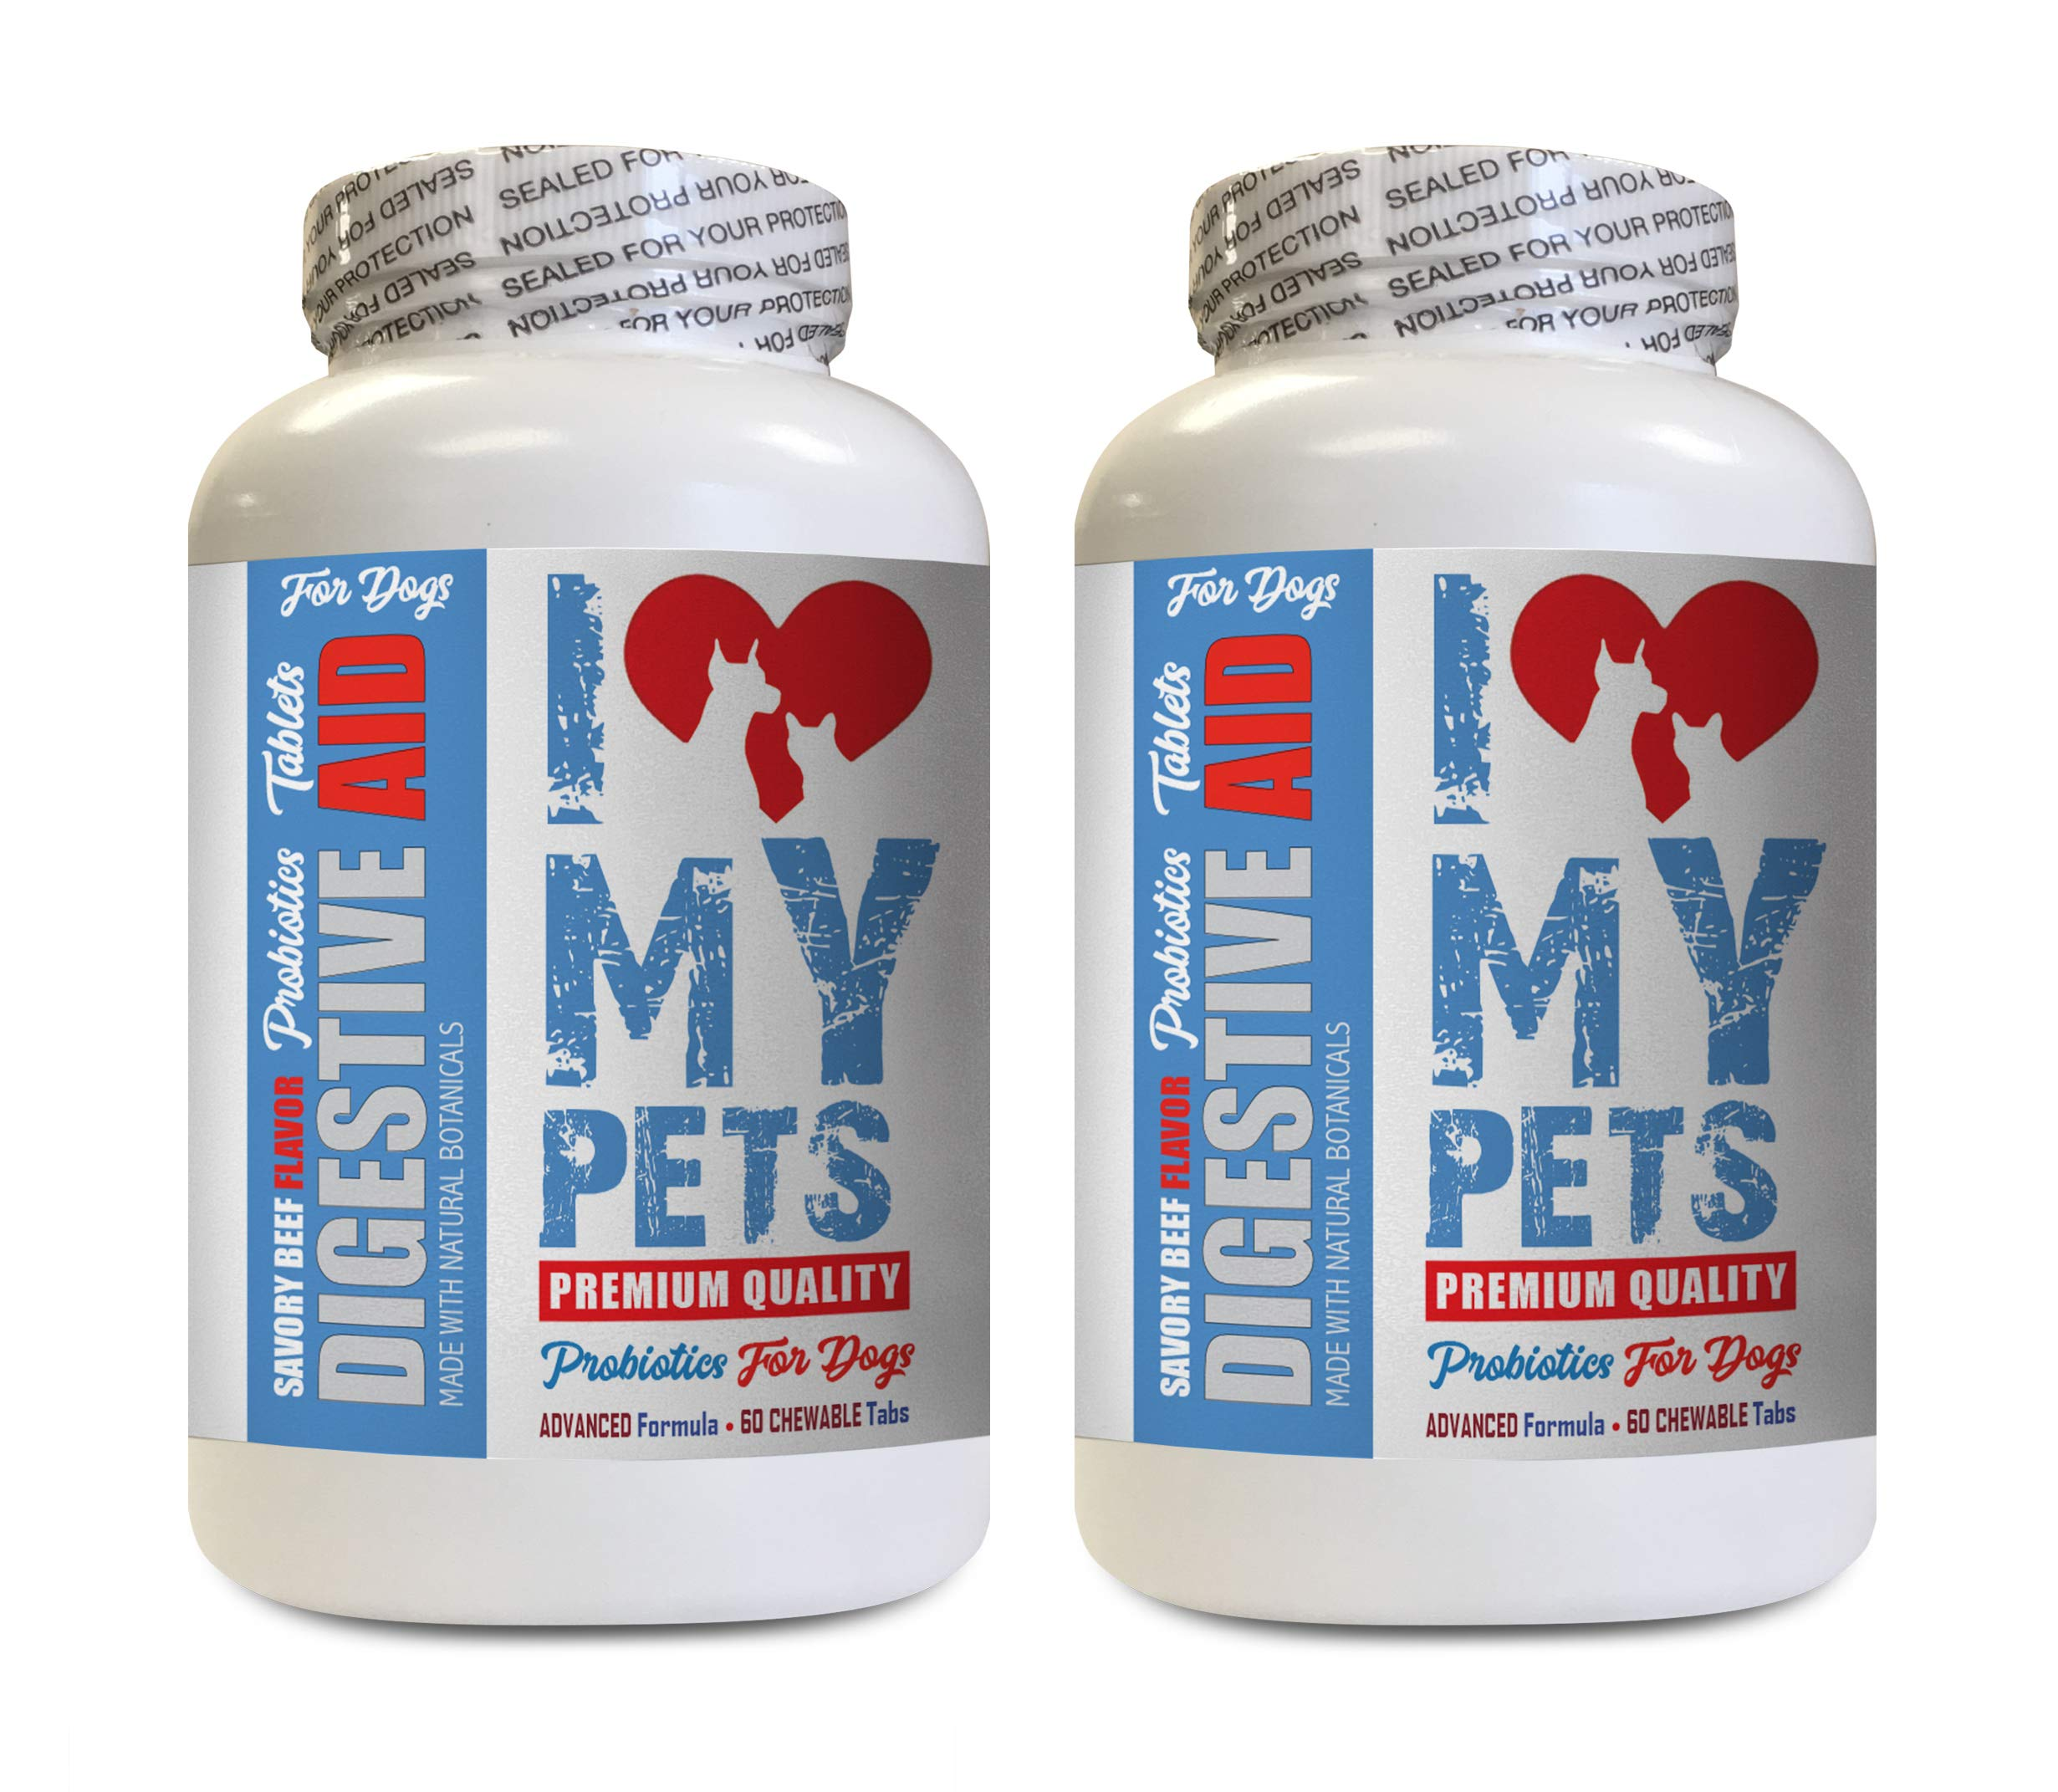 Digestive aid for Pets - Digestive AID for Dogs - PET PROBIOTIC Beef Liver Treats - 120 Treats (2 Bottles) by I LOVE MY PETS LLC